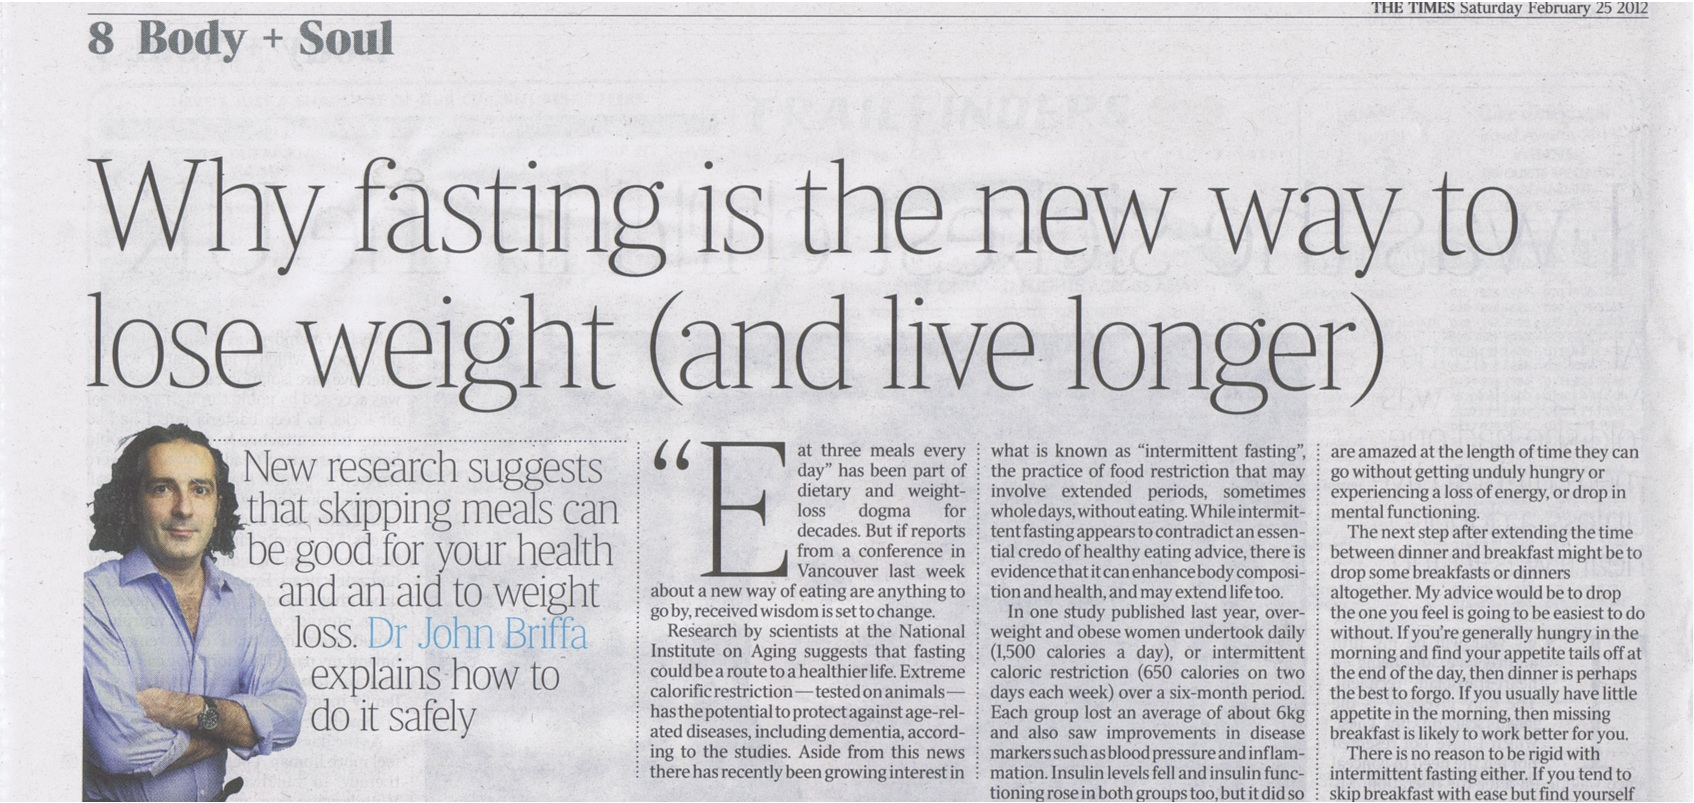 My Times piece on intermittent fasting Dr Briffa's Blog - A Good Look at Good Health